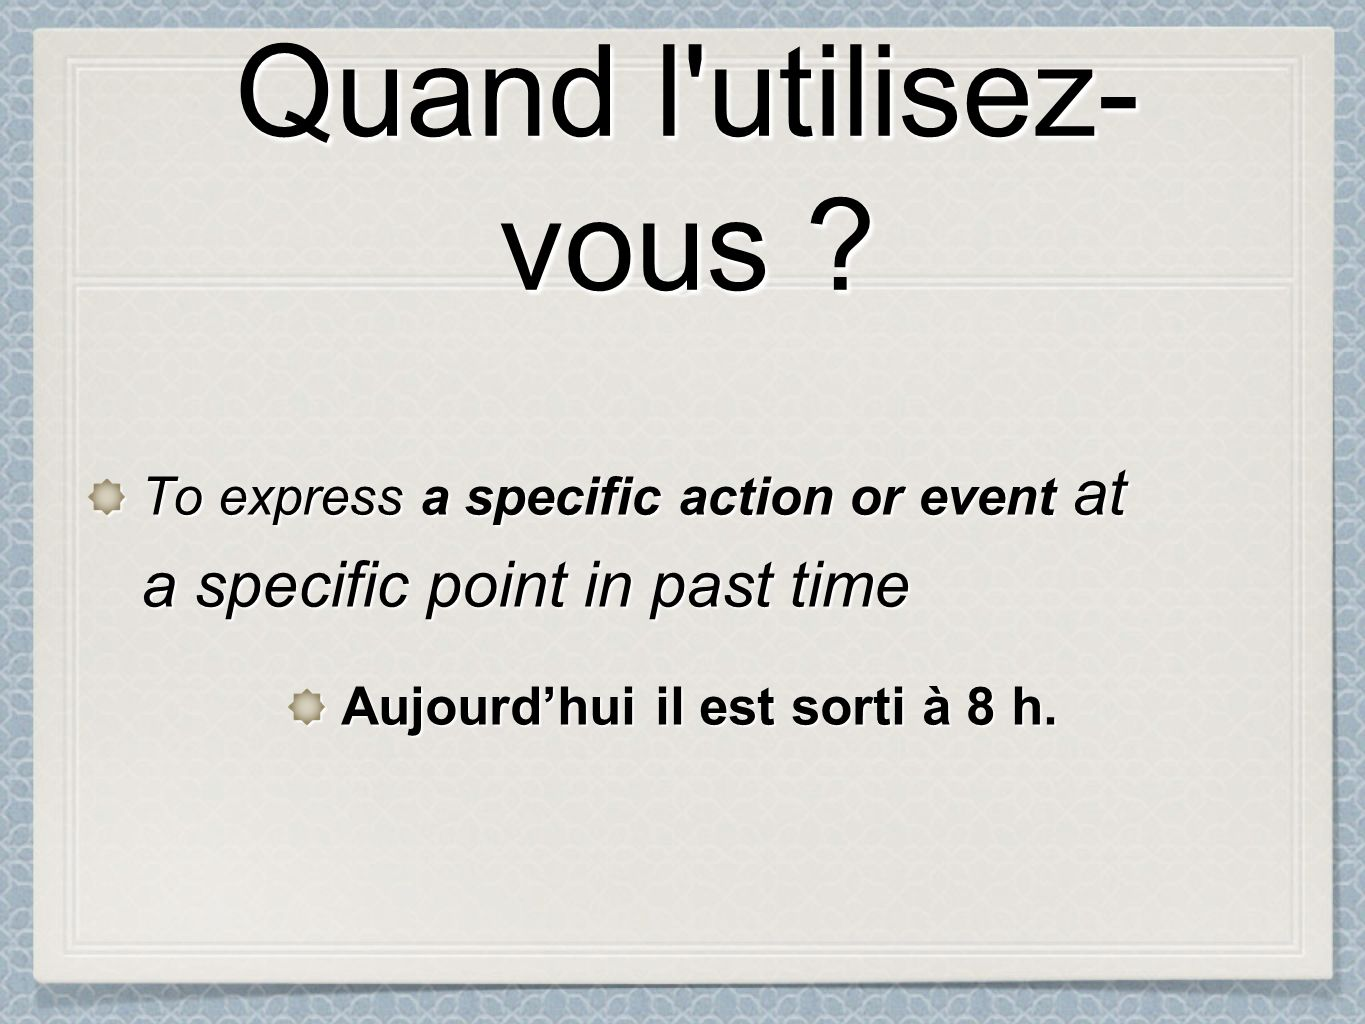 Quand l'utilisez- vous ? To express express a specific action or event at a specific point in past time Aujourdhui il est sorti à 8 h.